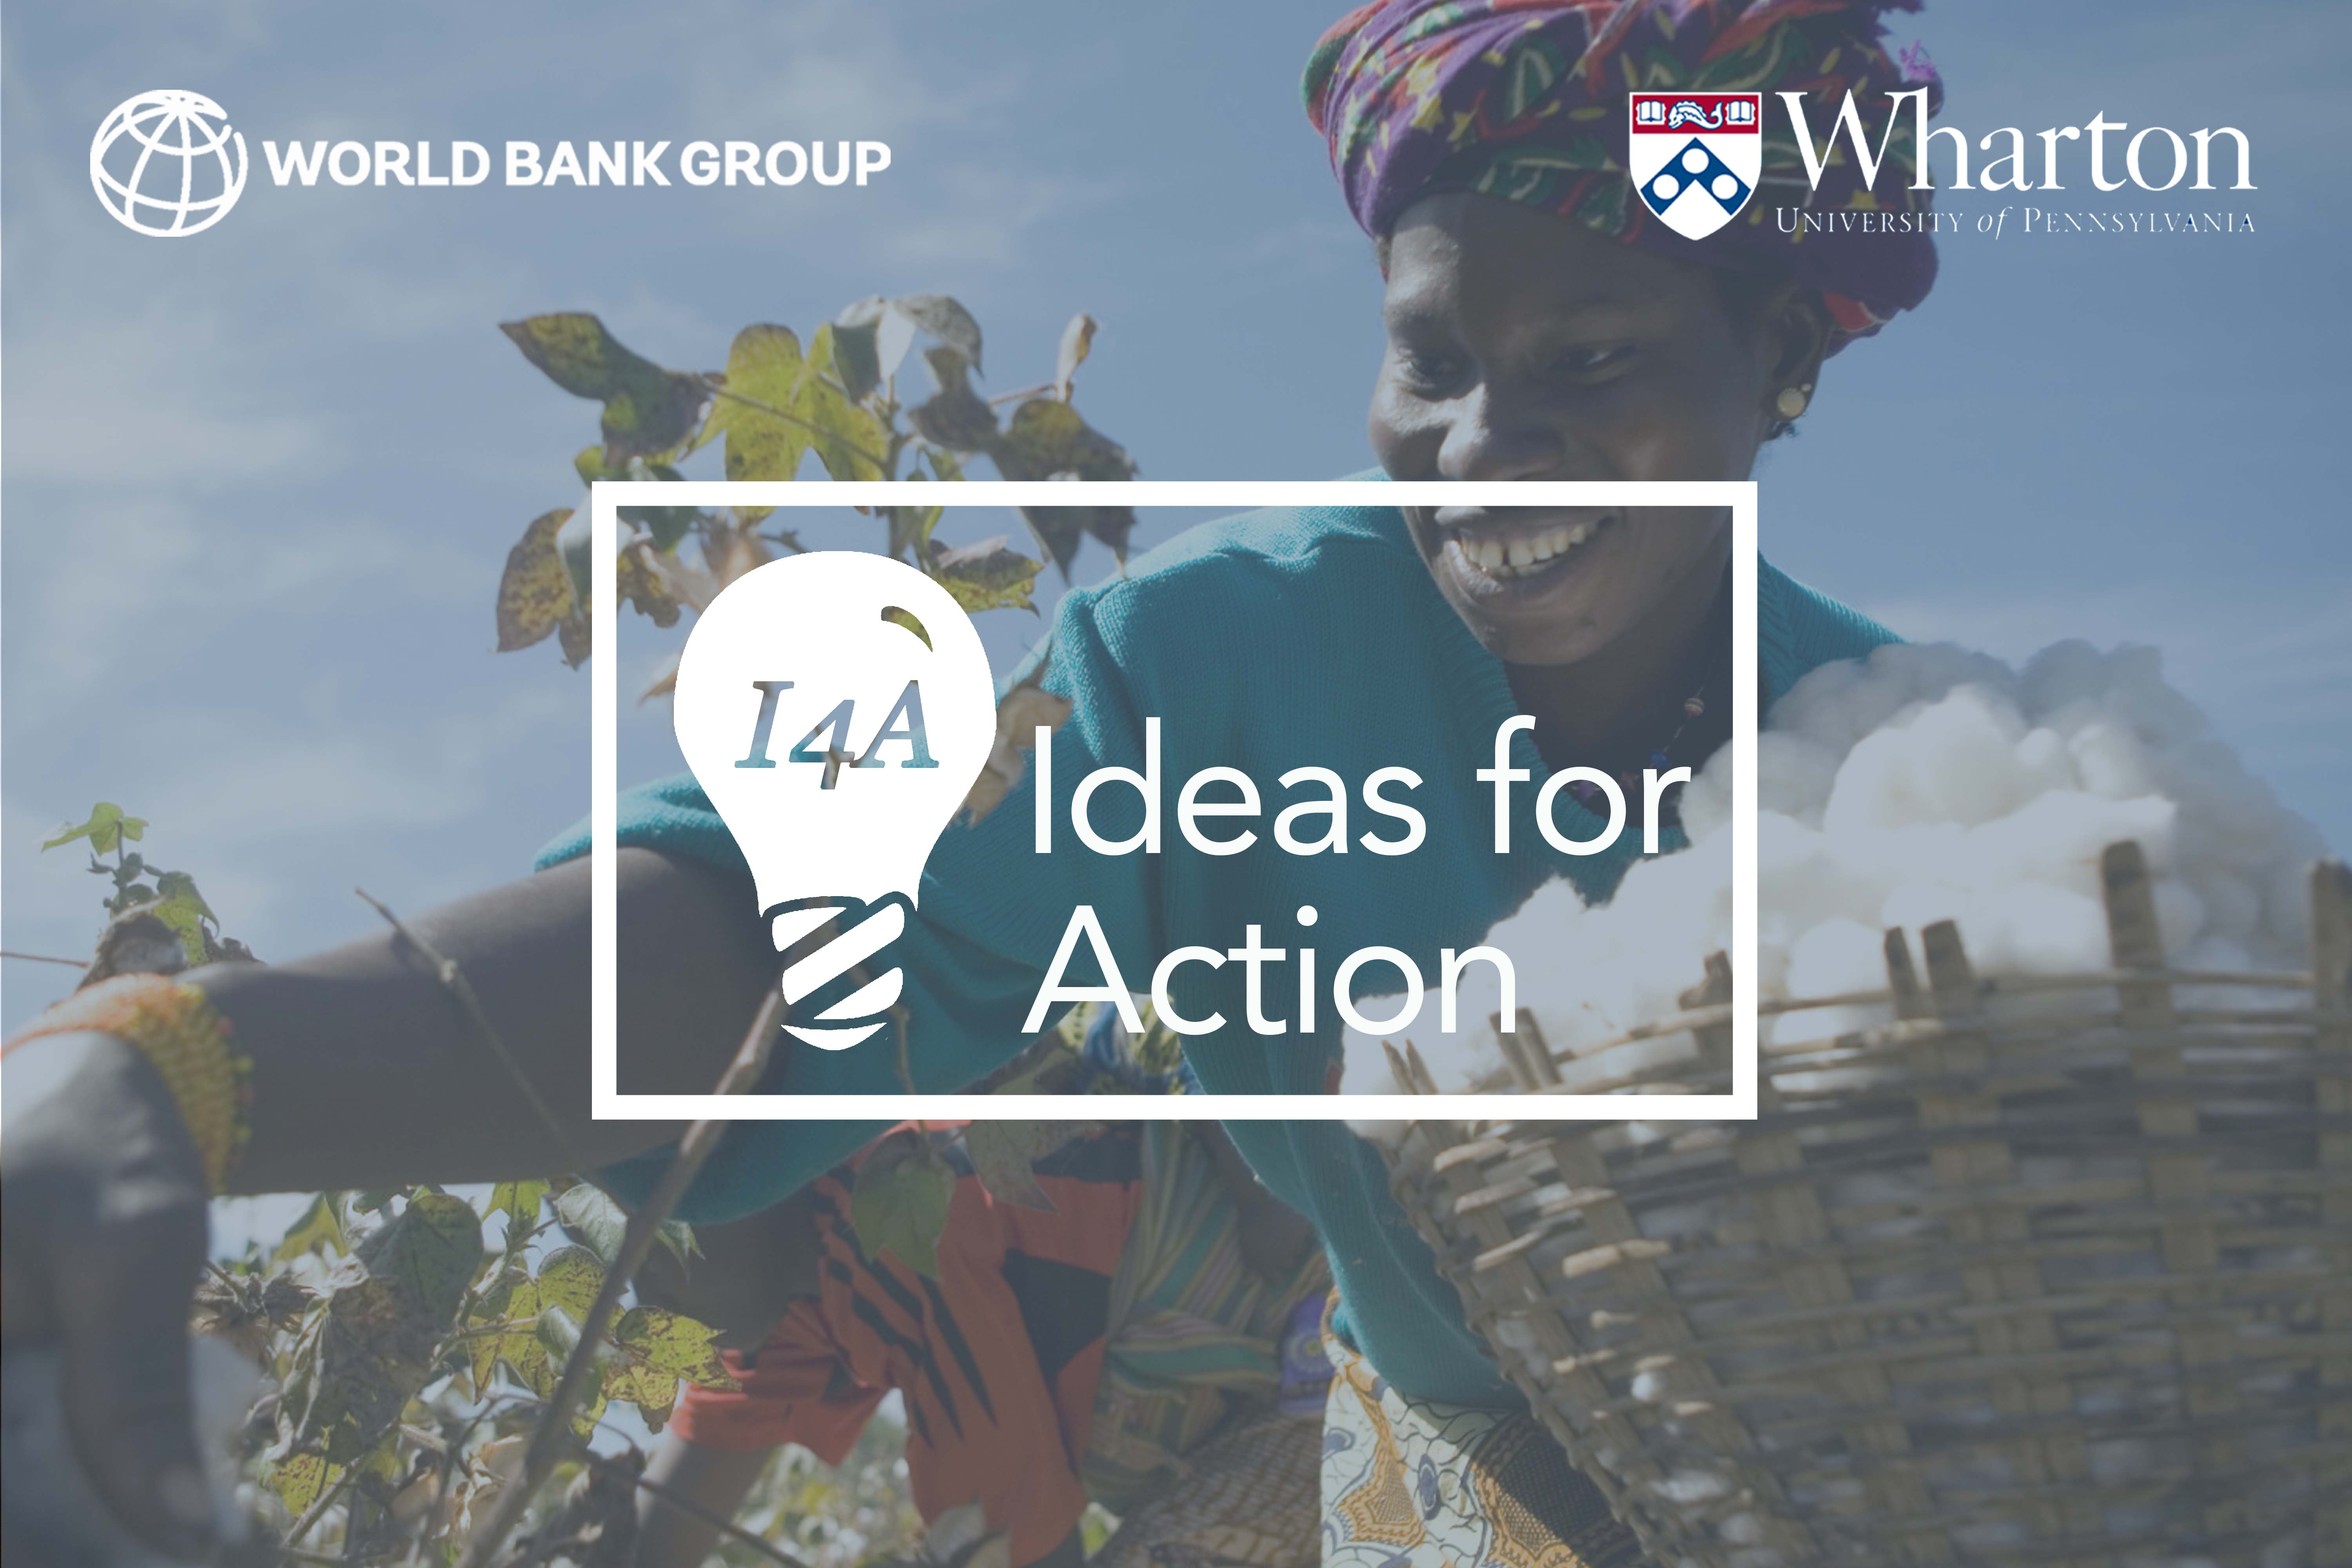 """World Bank """"Ideas for Action"""" Global Competition 2017 for Young People Worldwide"""